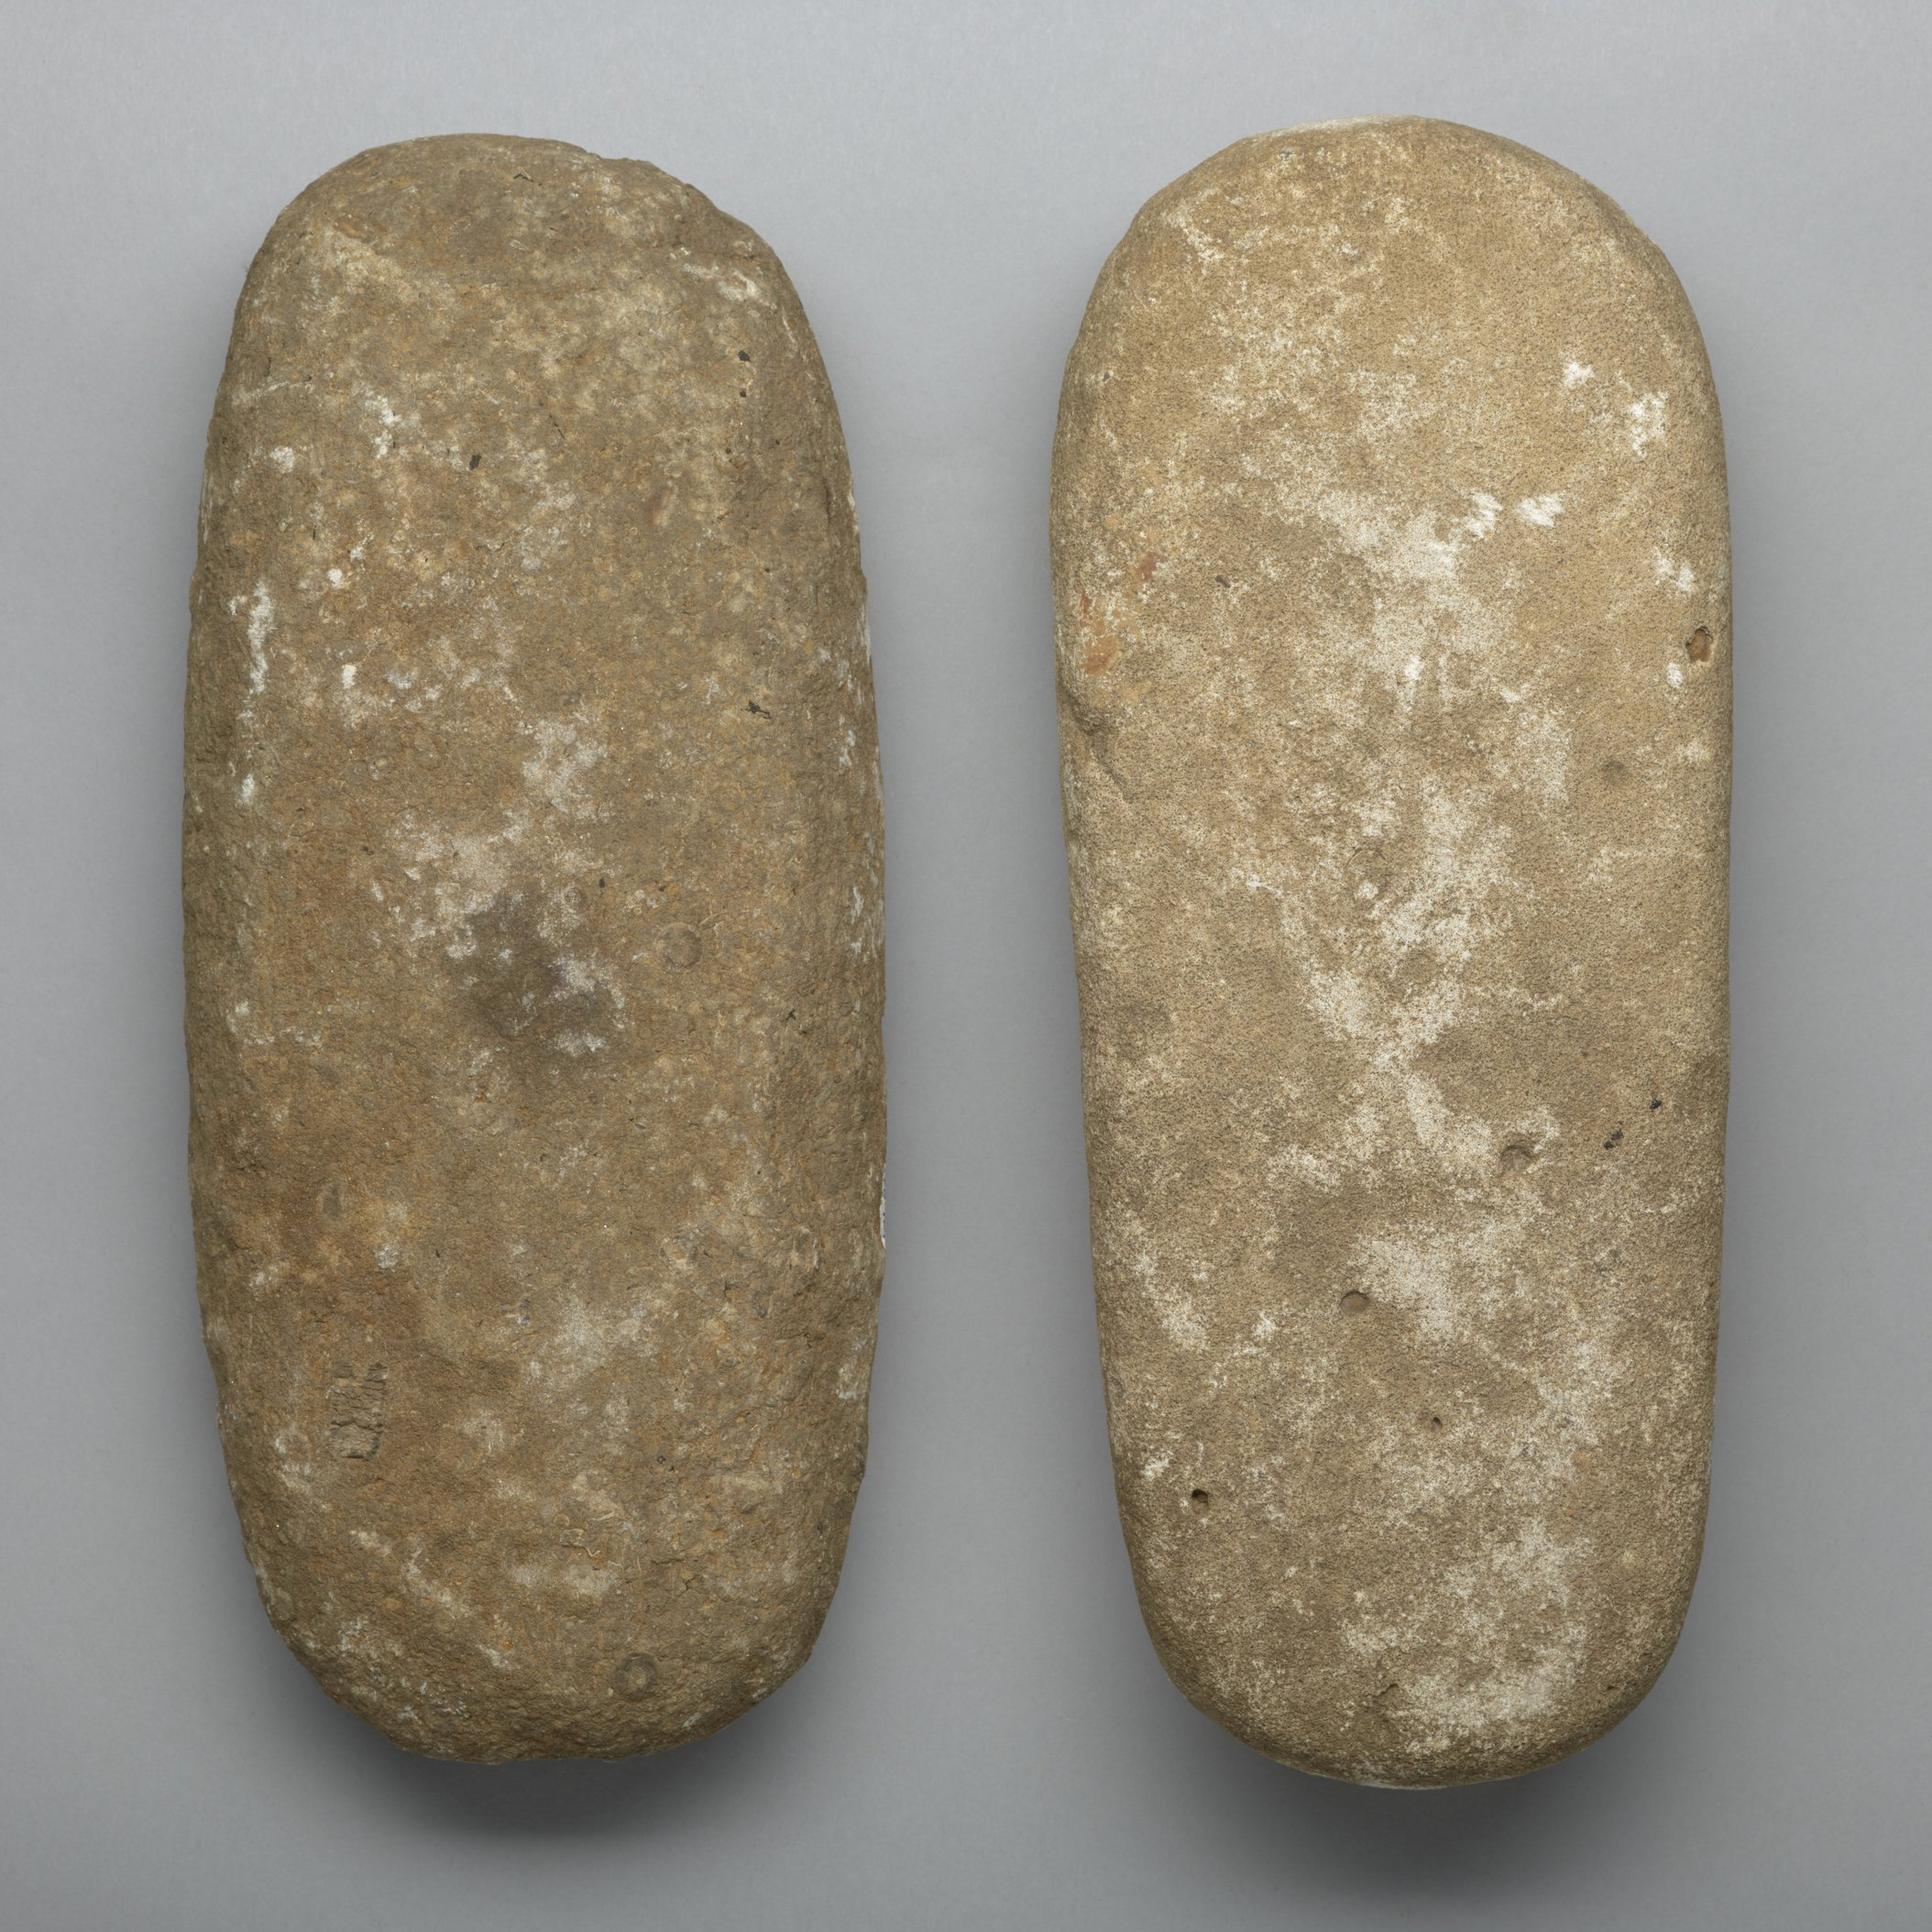 Manos from the Neodesha Fort Site, 14WN1 - 2